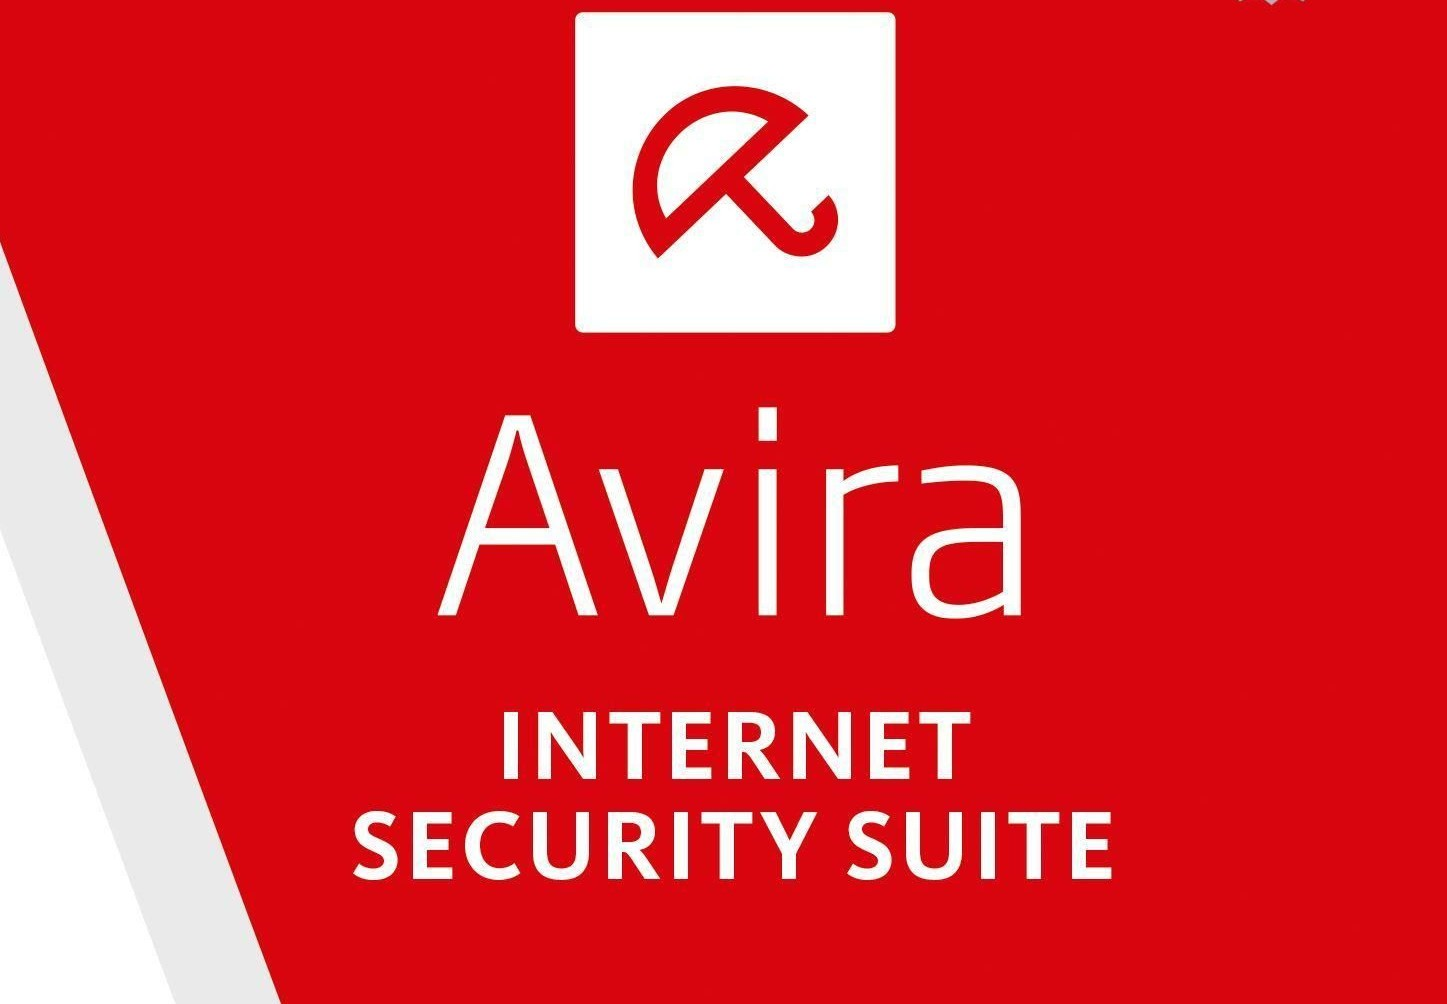 Avira Internet Security Suite 2020 Key (3 Years / 5 Devices)